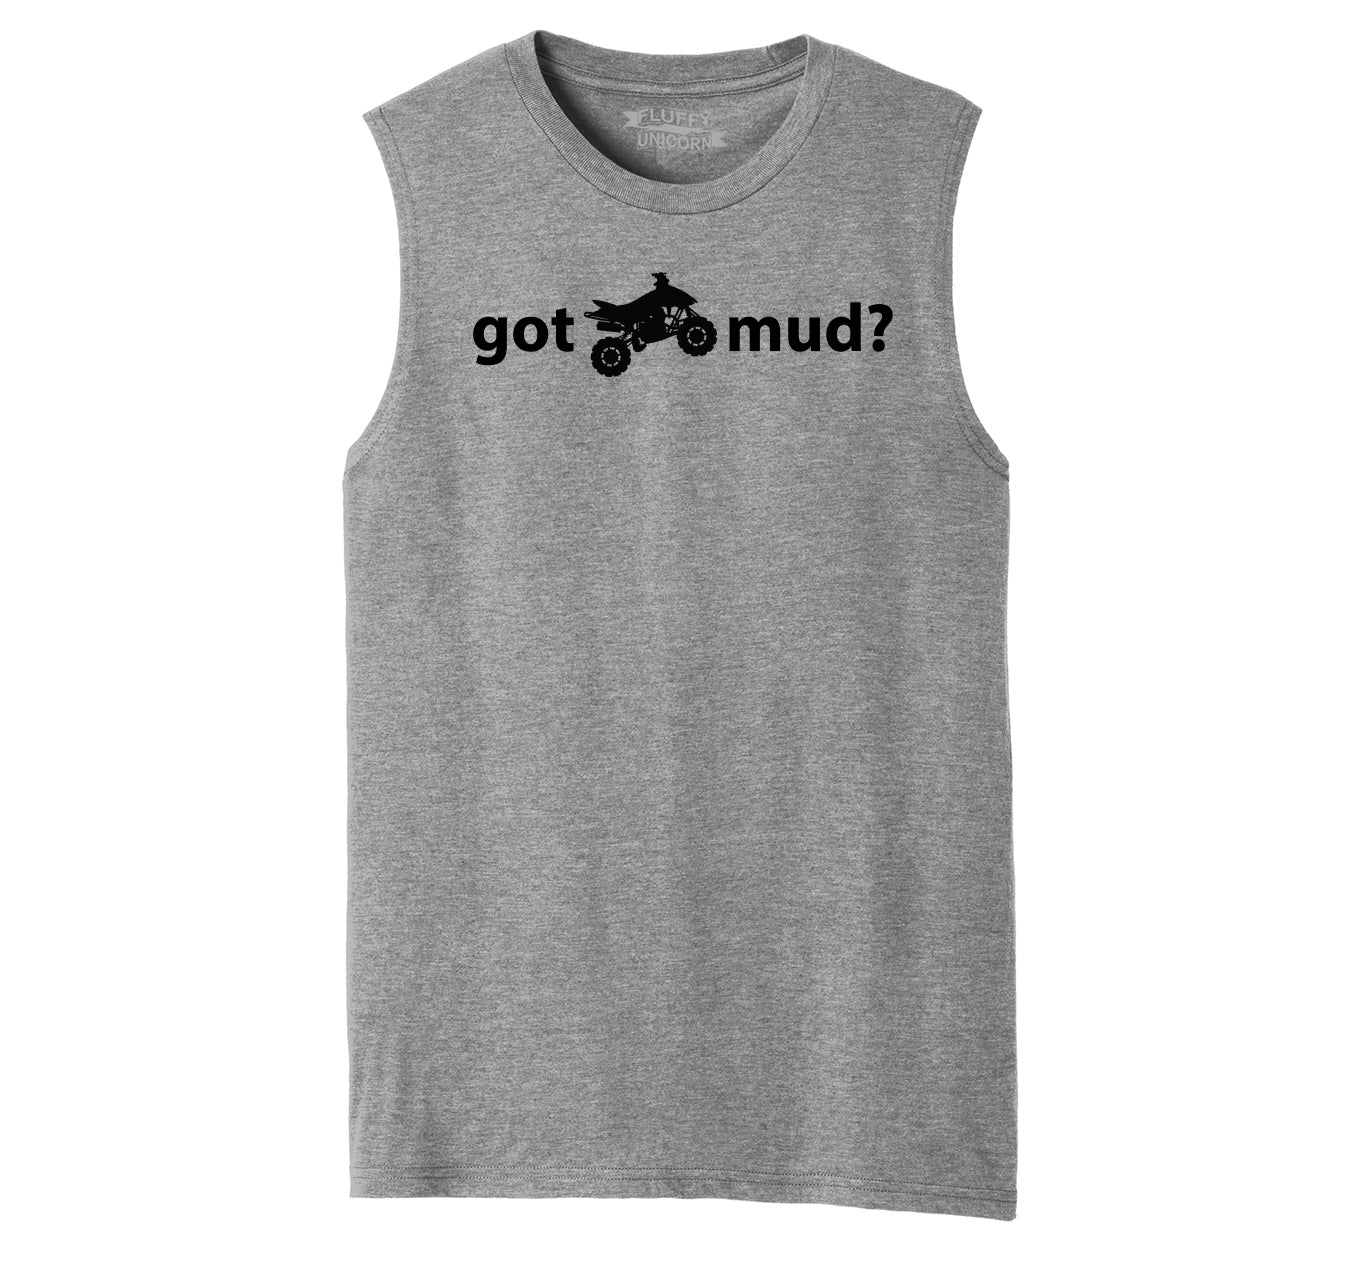 God Mud? Funny Off Roading 4X4 Shirt Mens Muscle Tank Muscle Tee